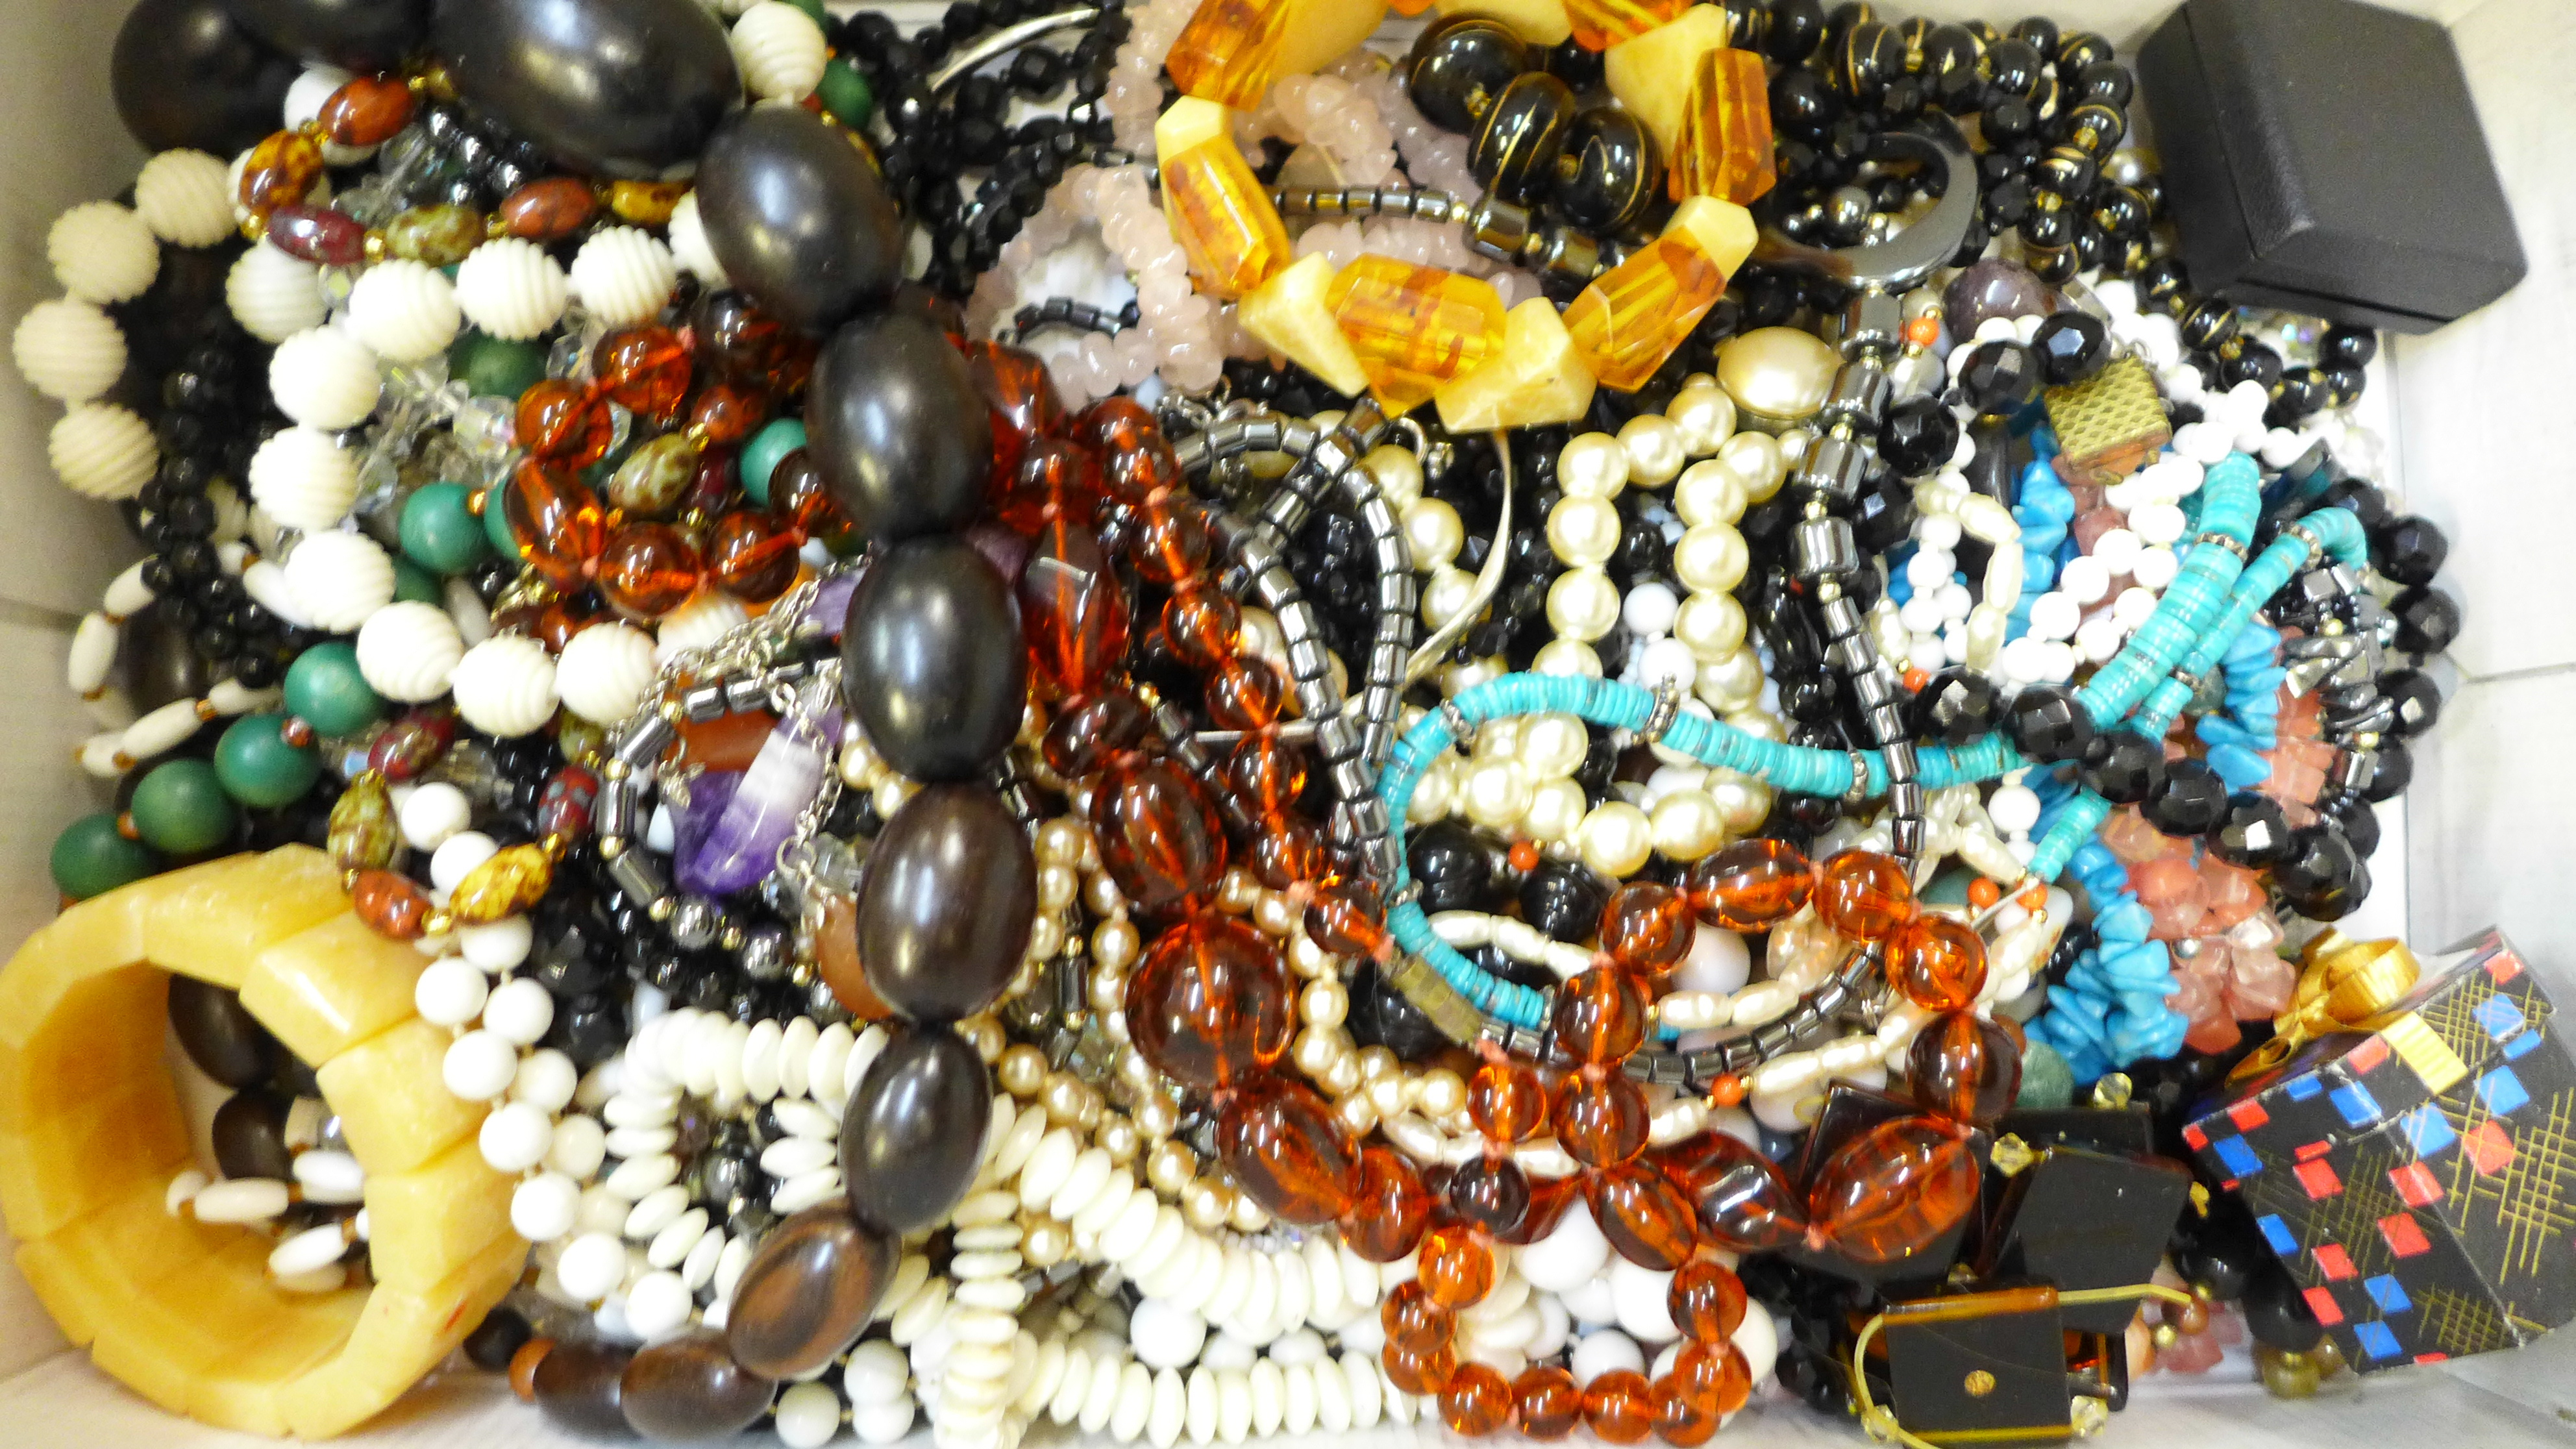 Costume jewellery including glass and stone beads